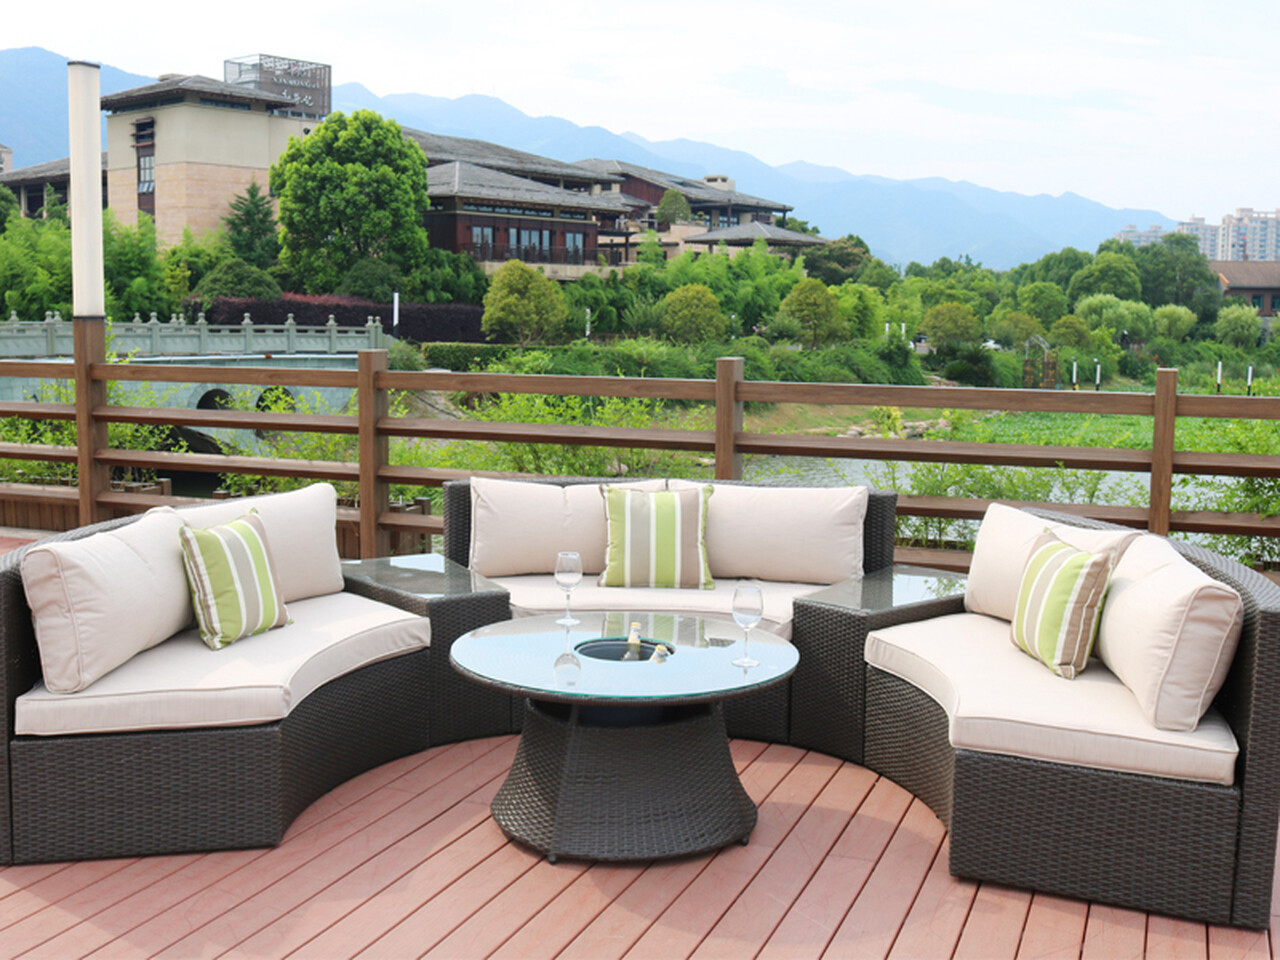 Jessie 6 Piece Rattan Sectional Set with Chill Table